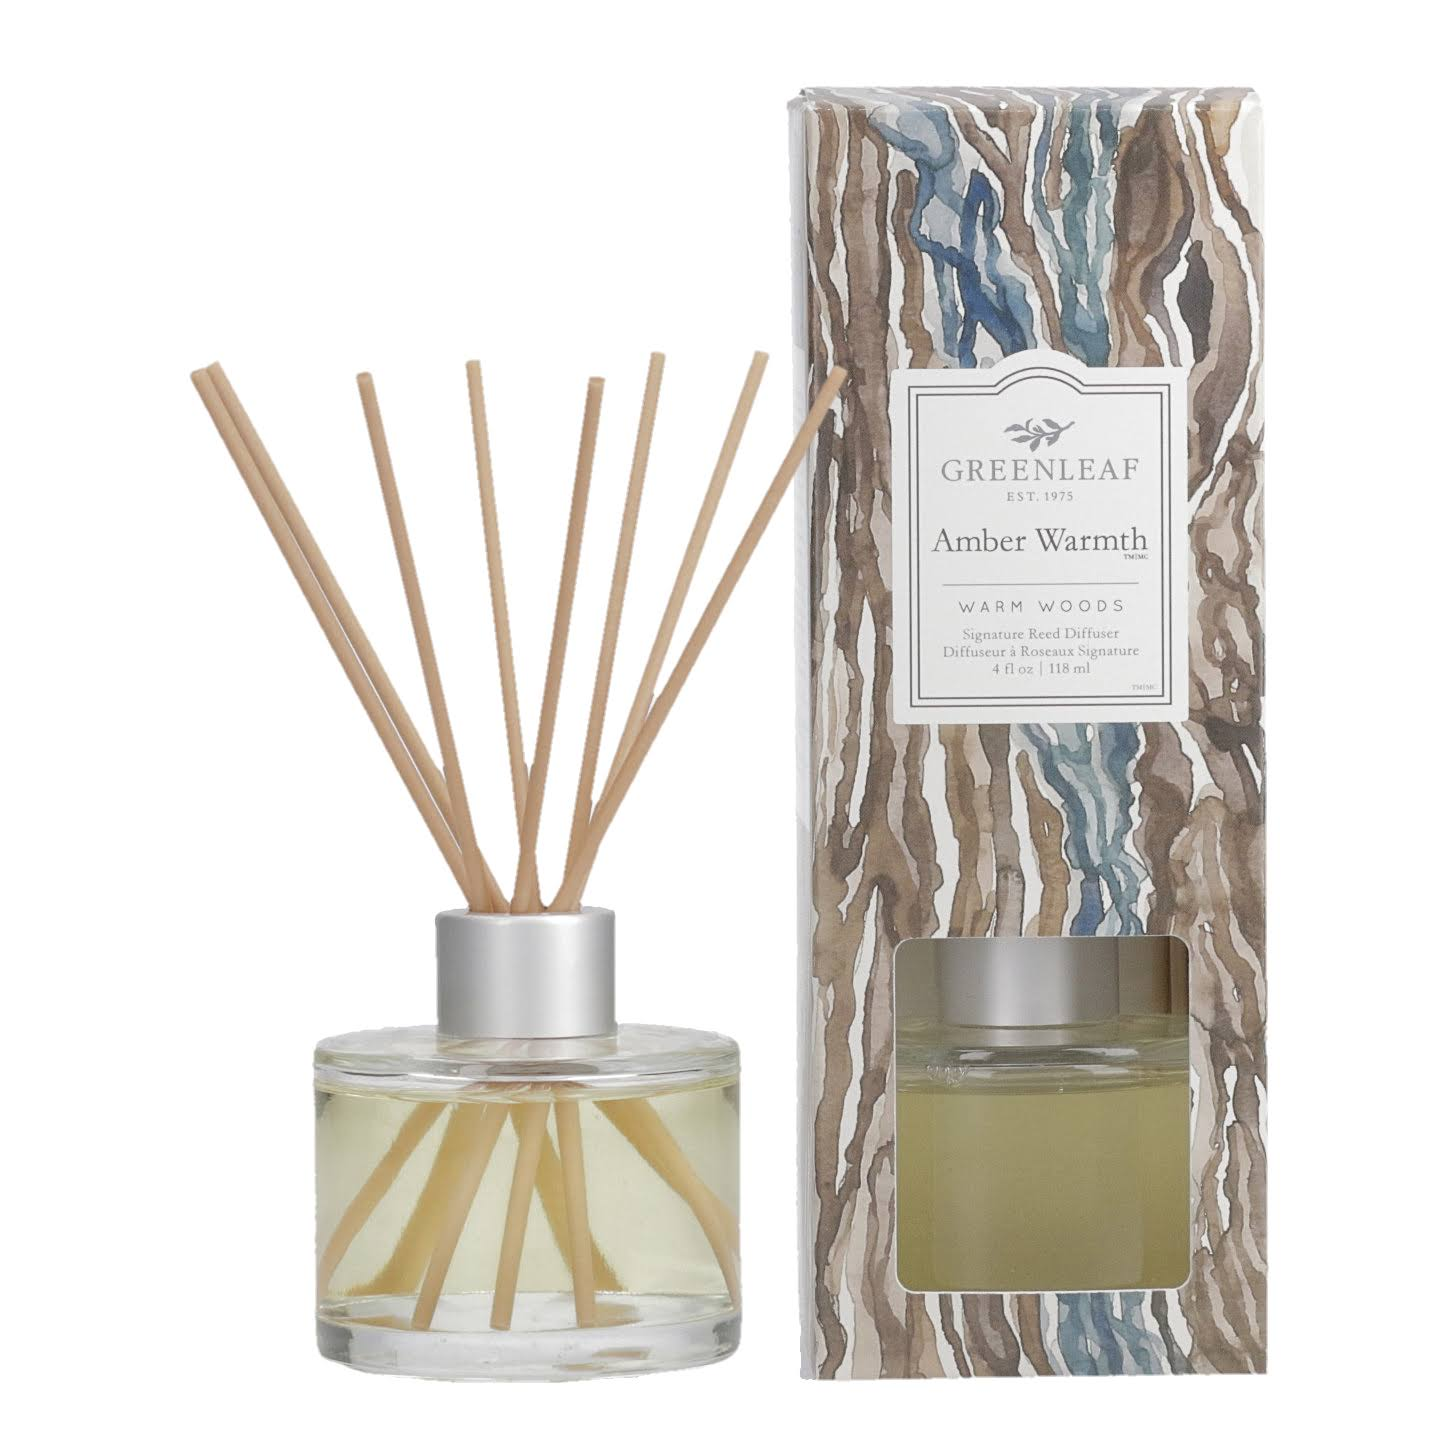 Greenleaf Gifts Amber Warmth Signature Reed Diffuser